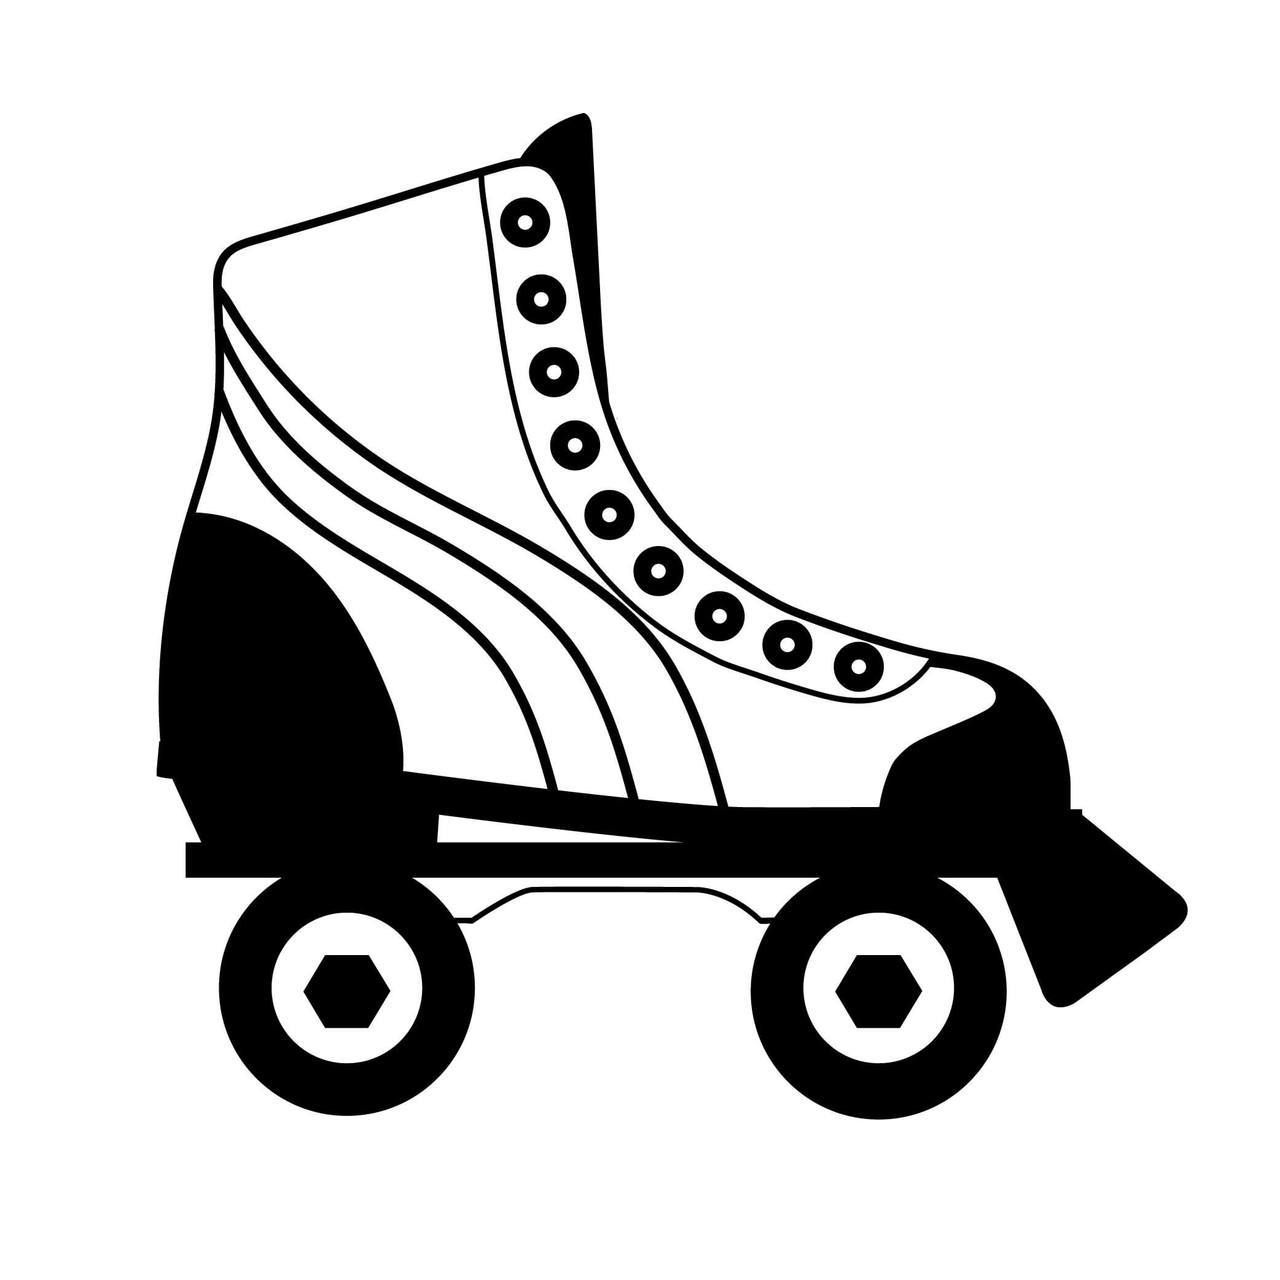 Roller Skates Clipart Black And White 10 Free Cliparts